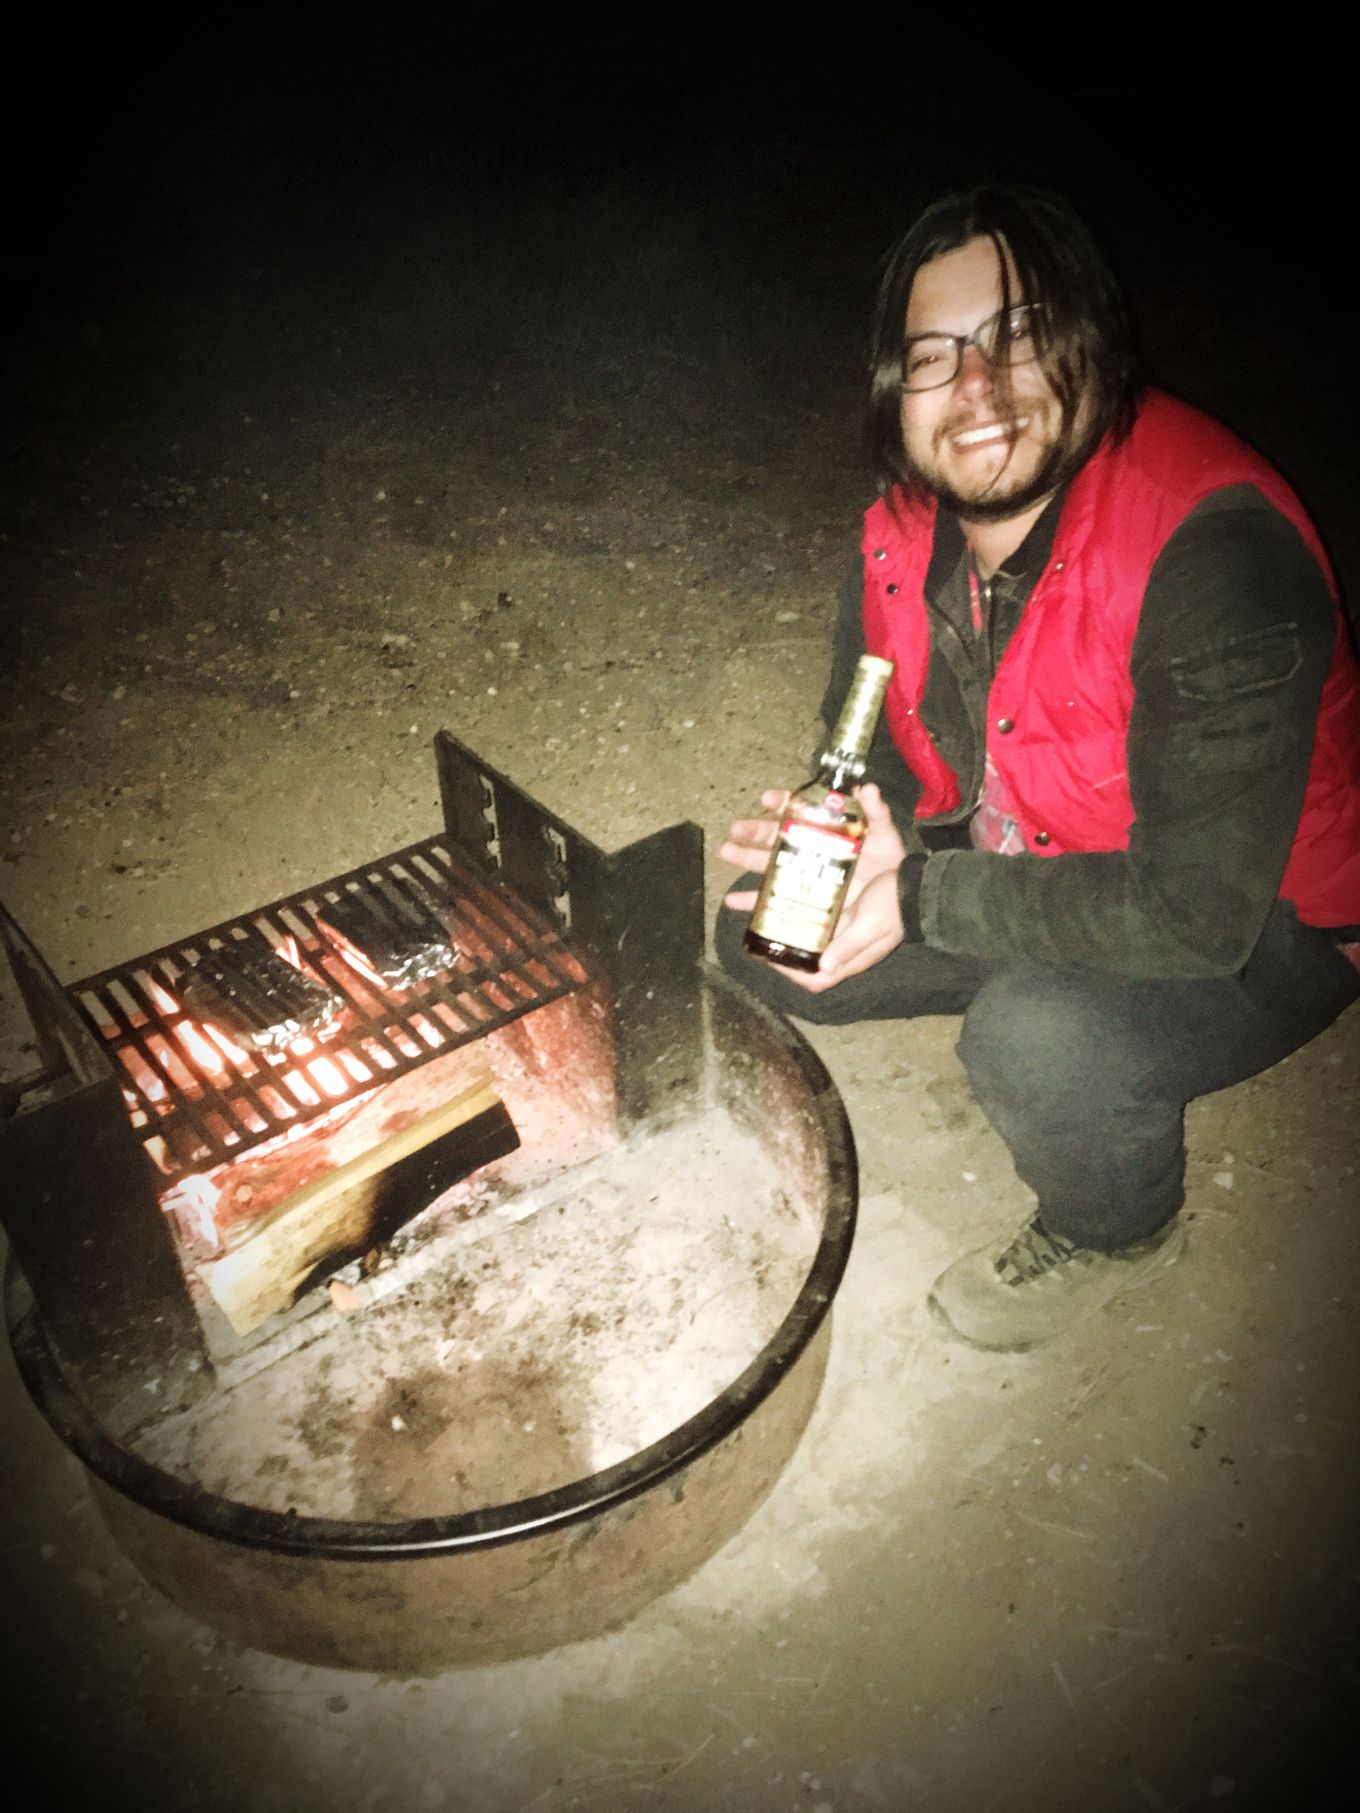 J with Heaven Hill whiskey by the campfire.